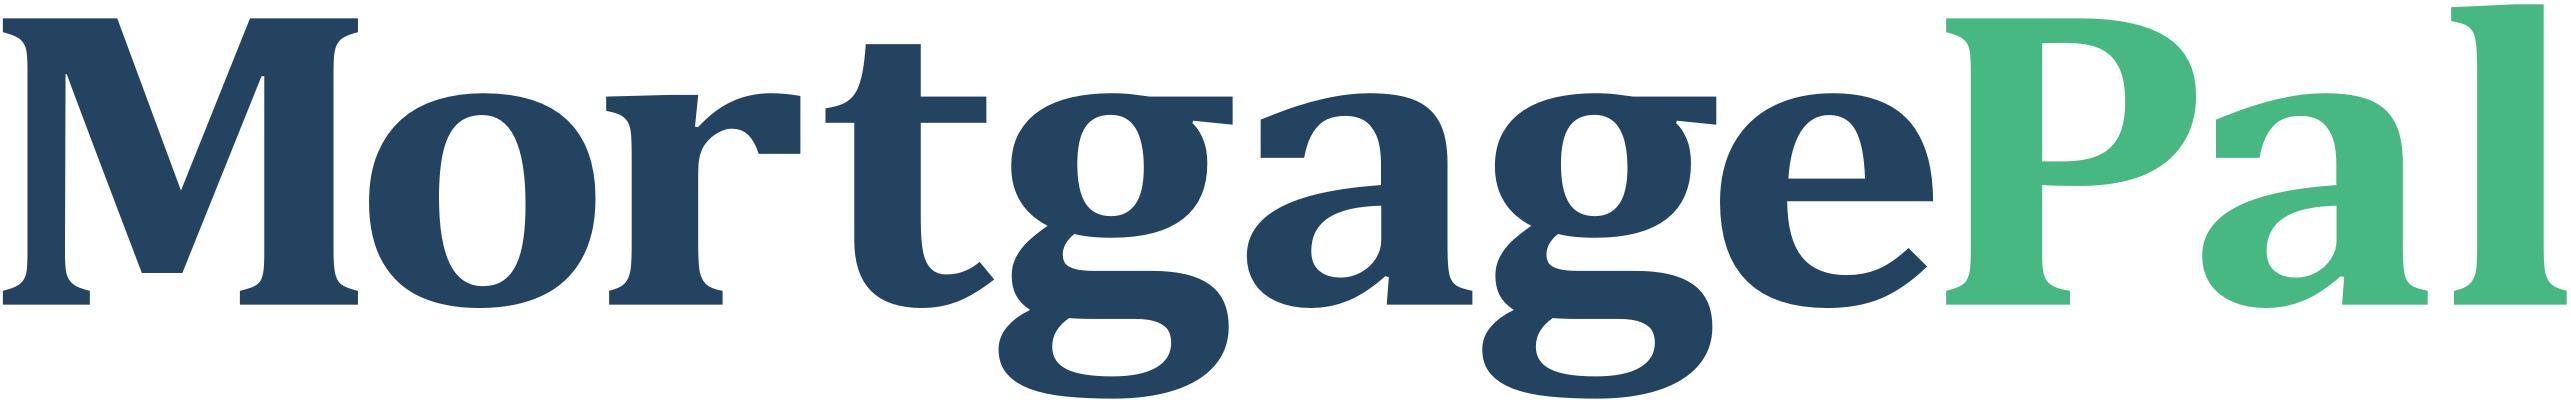 MortgagePal's logo